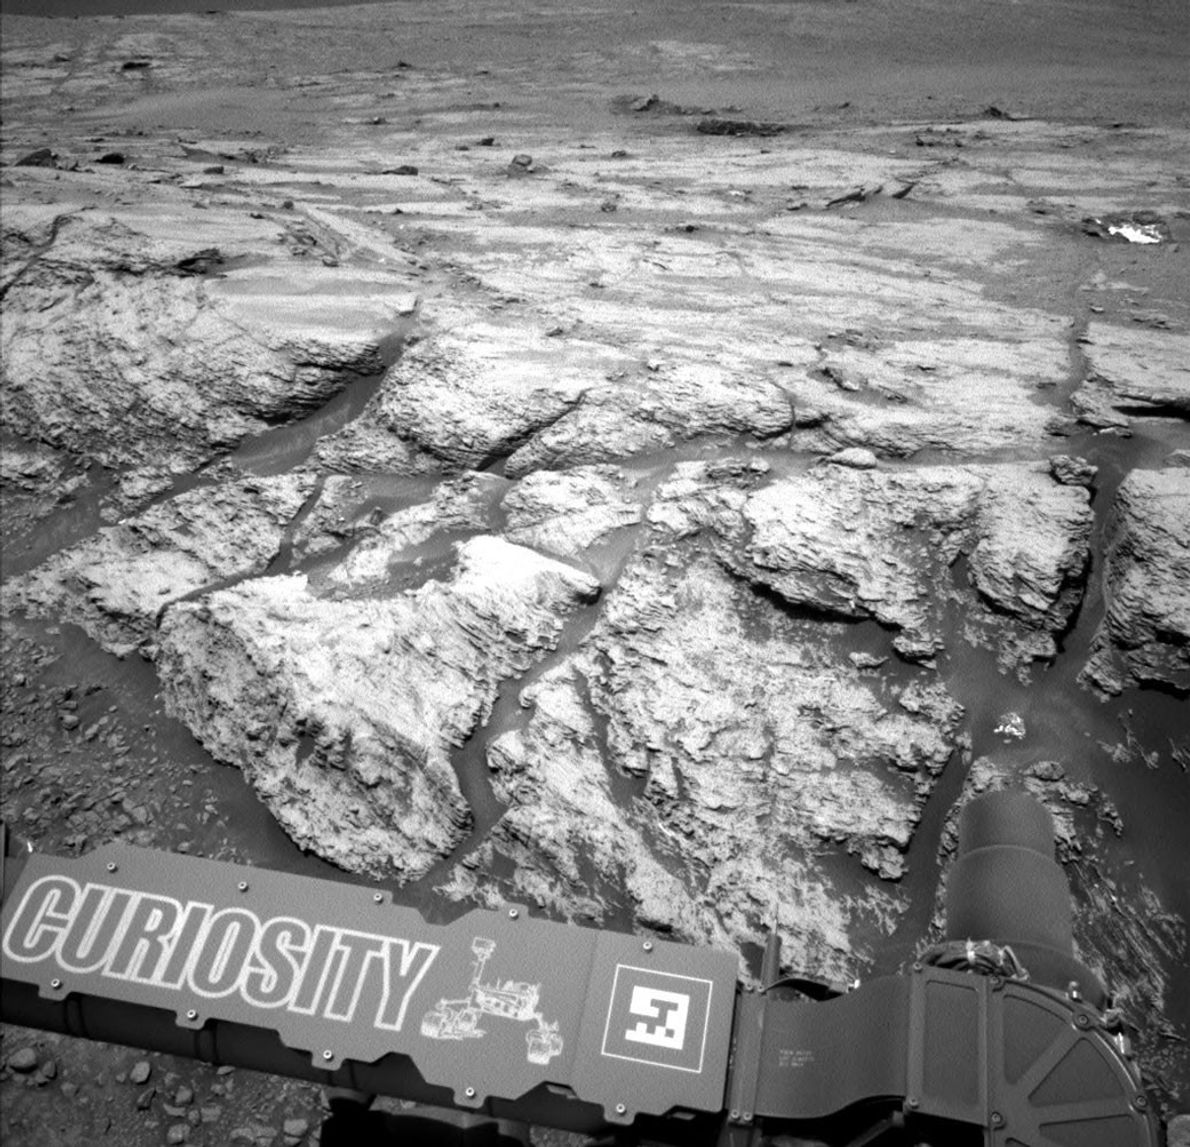 On June 19, NASA's Curiosity Mars rover detected a 21-parts-per-billion methane spike, the largest it's ever ...